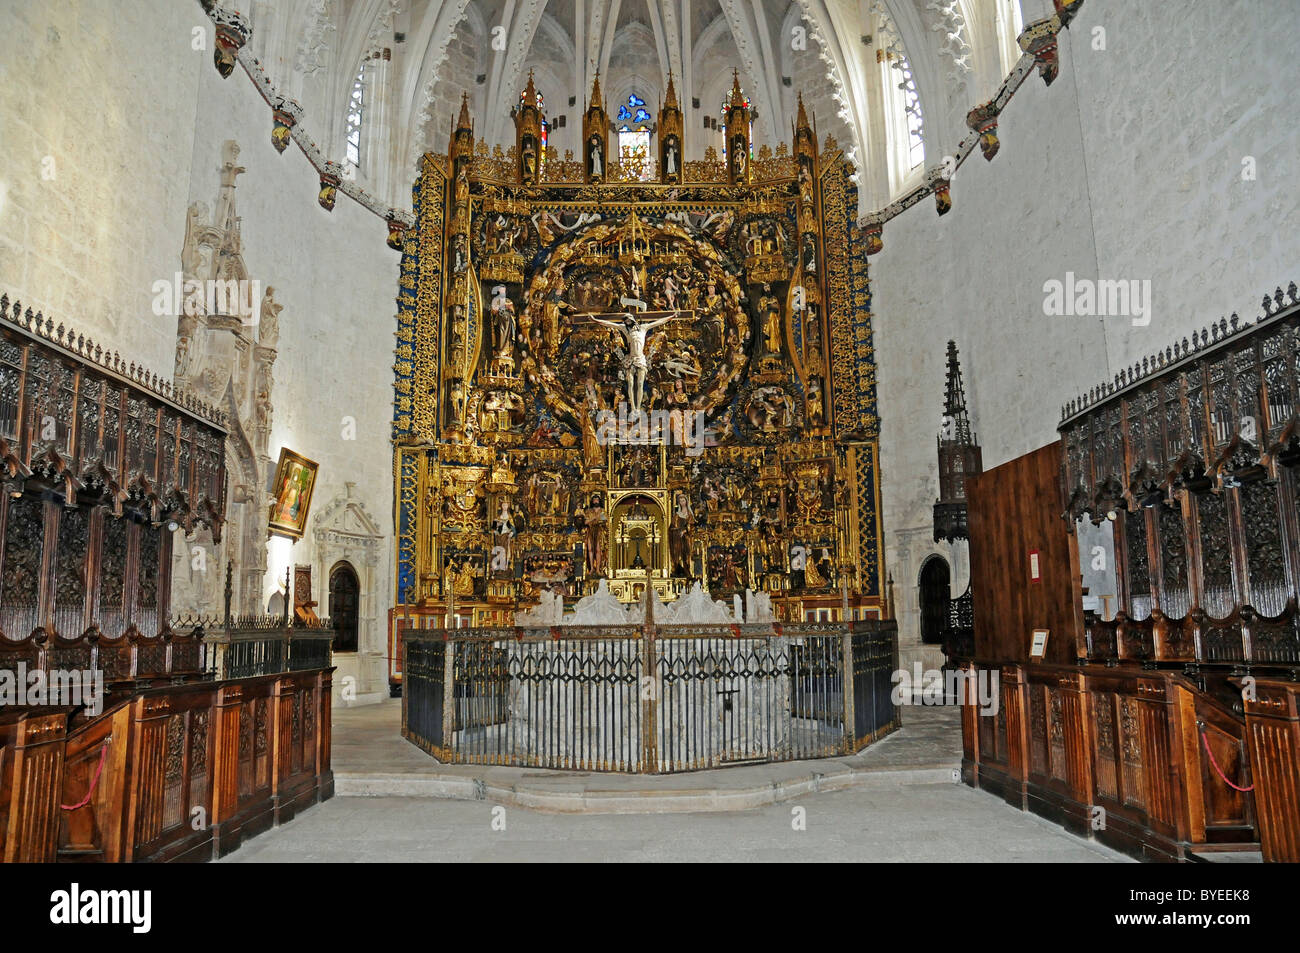 Altar of the church of Cartuja de Miraflores, Carthusian convent, Burgos, Castilla y Leon province, Spain, Europe - Stock Image